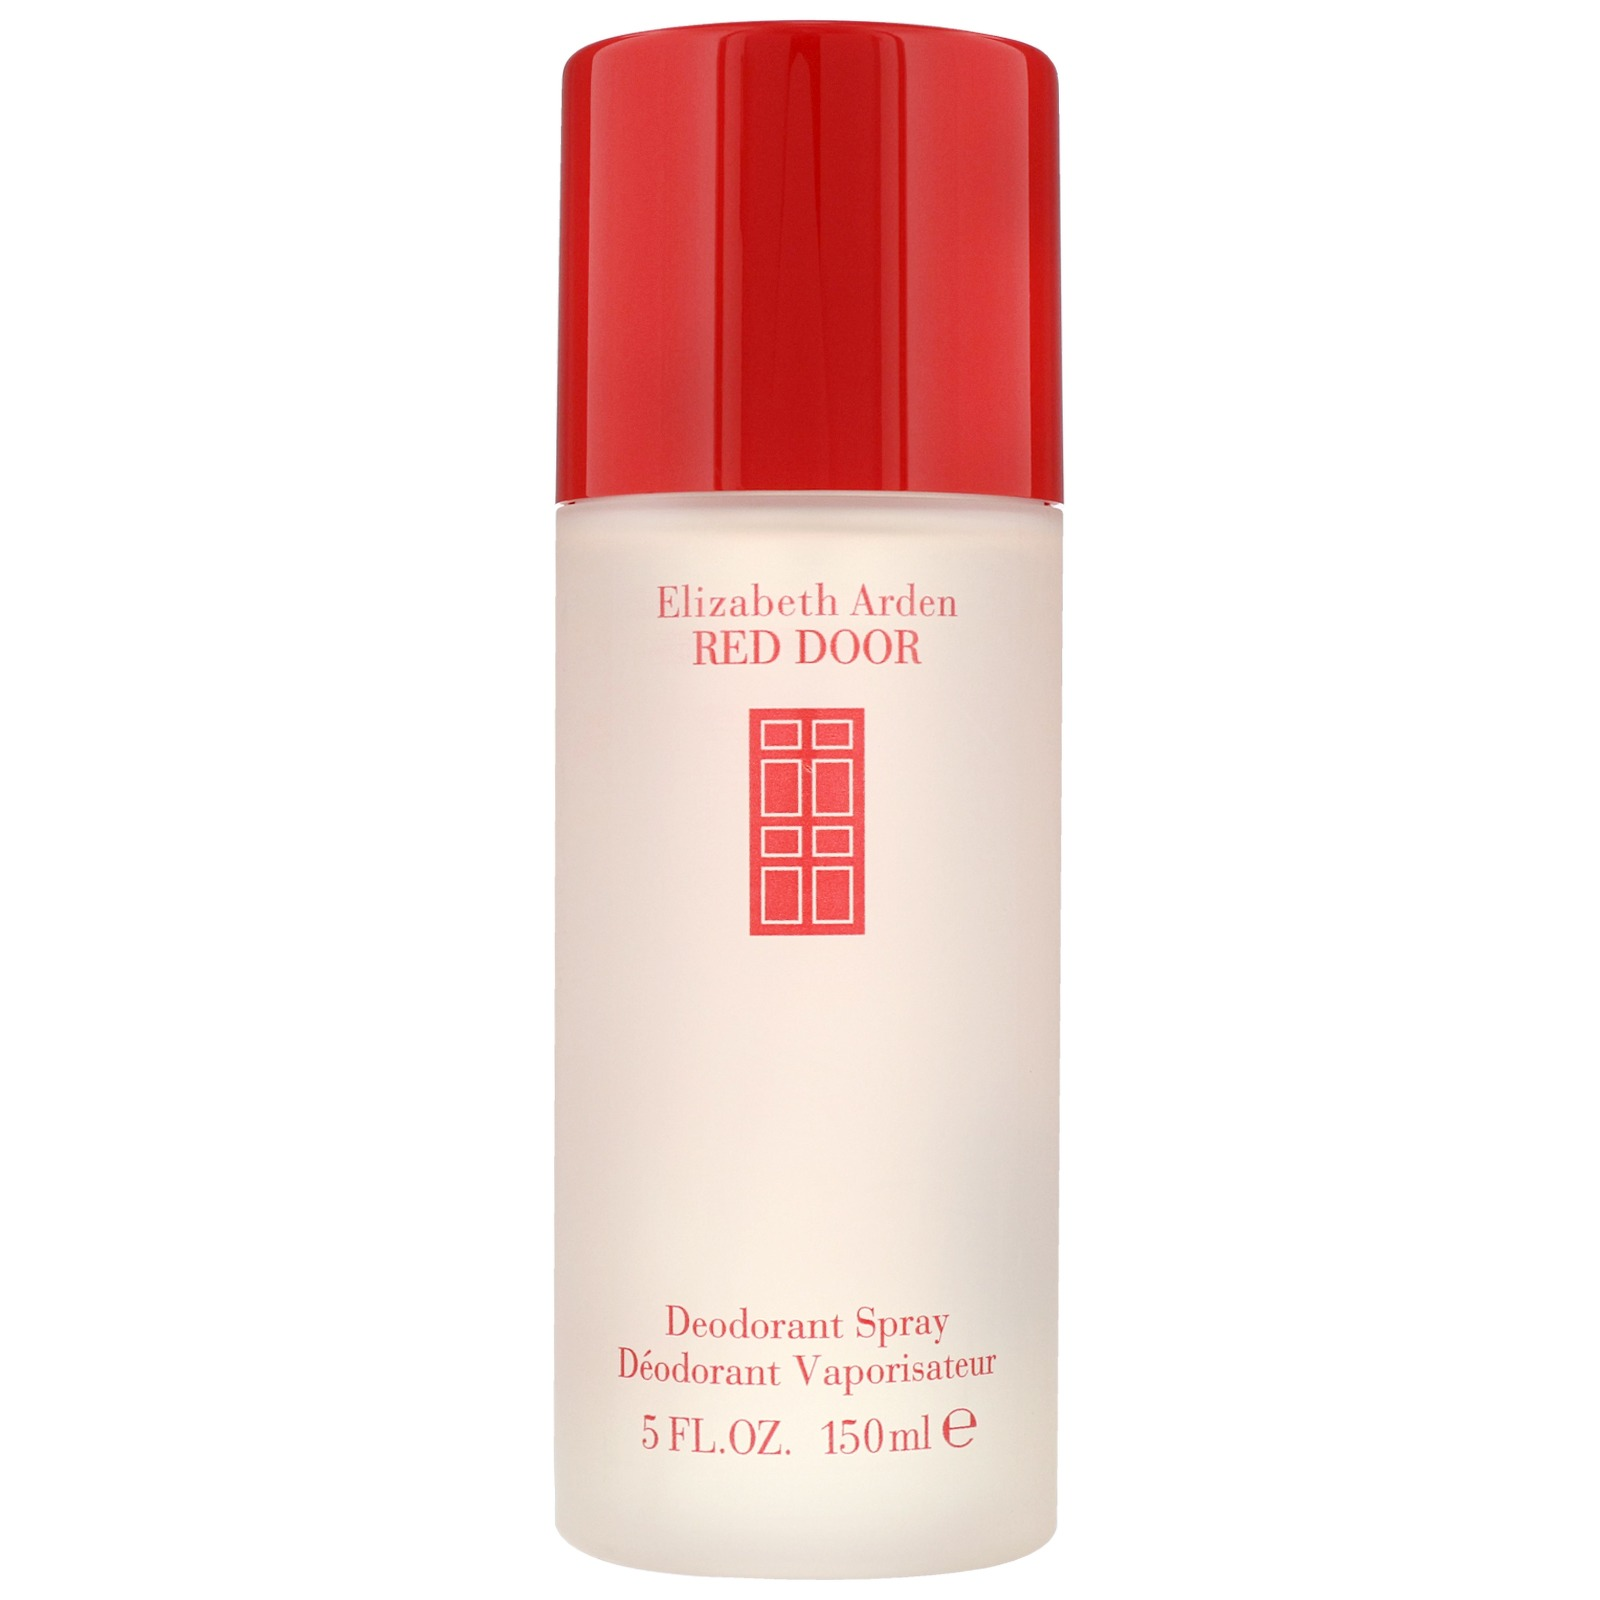 Elizabeth Arden Red Door Deodorant Spray 150ml / 5 fl.oz.